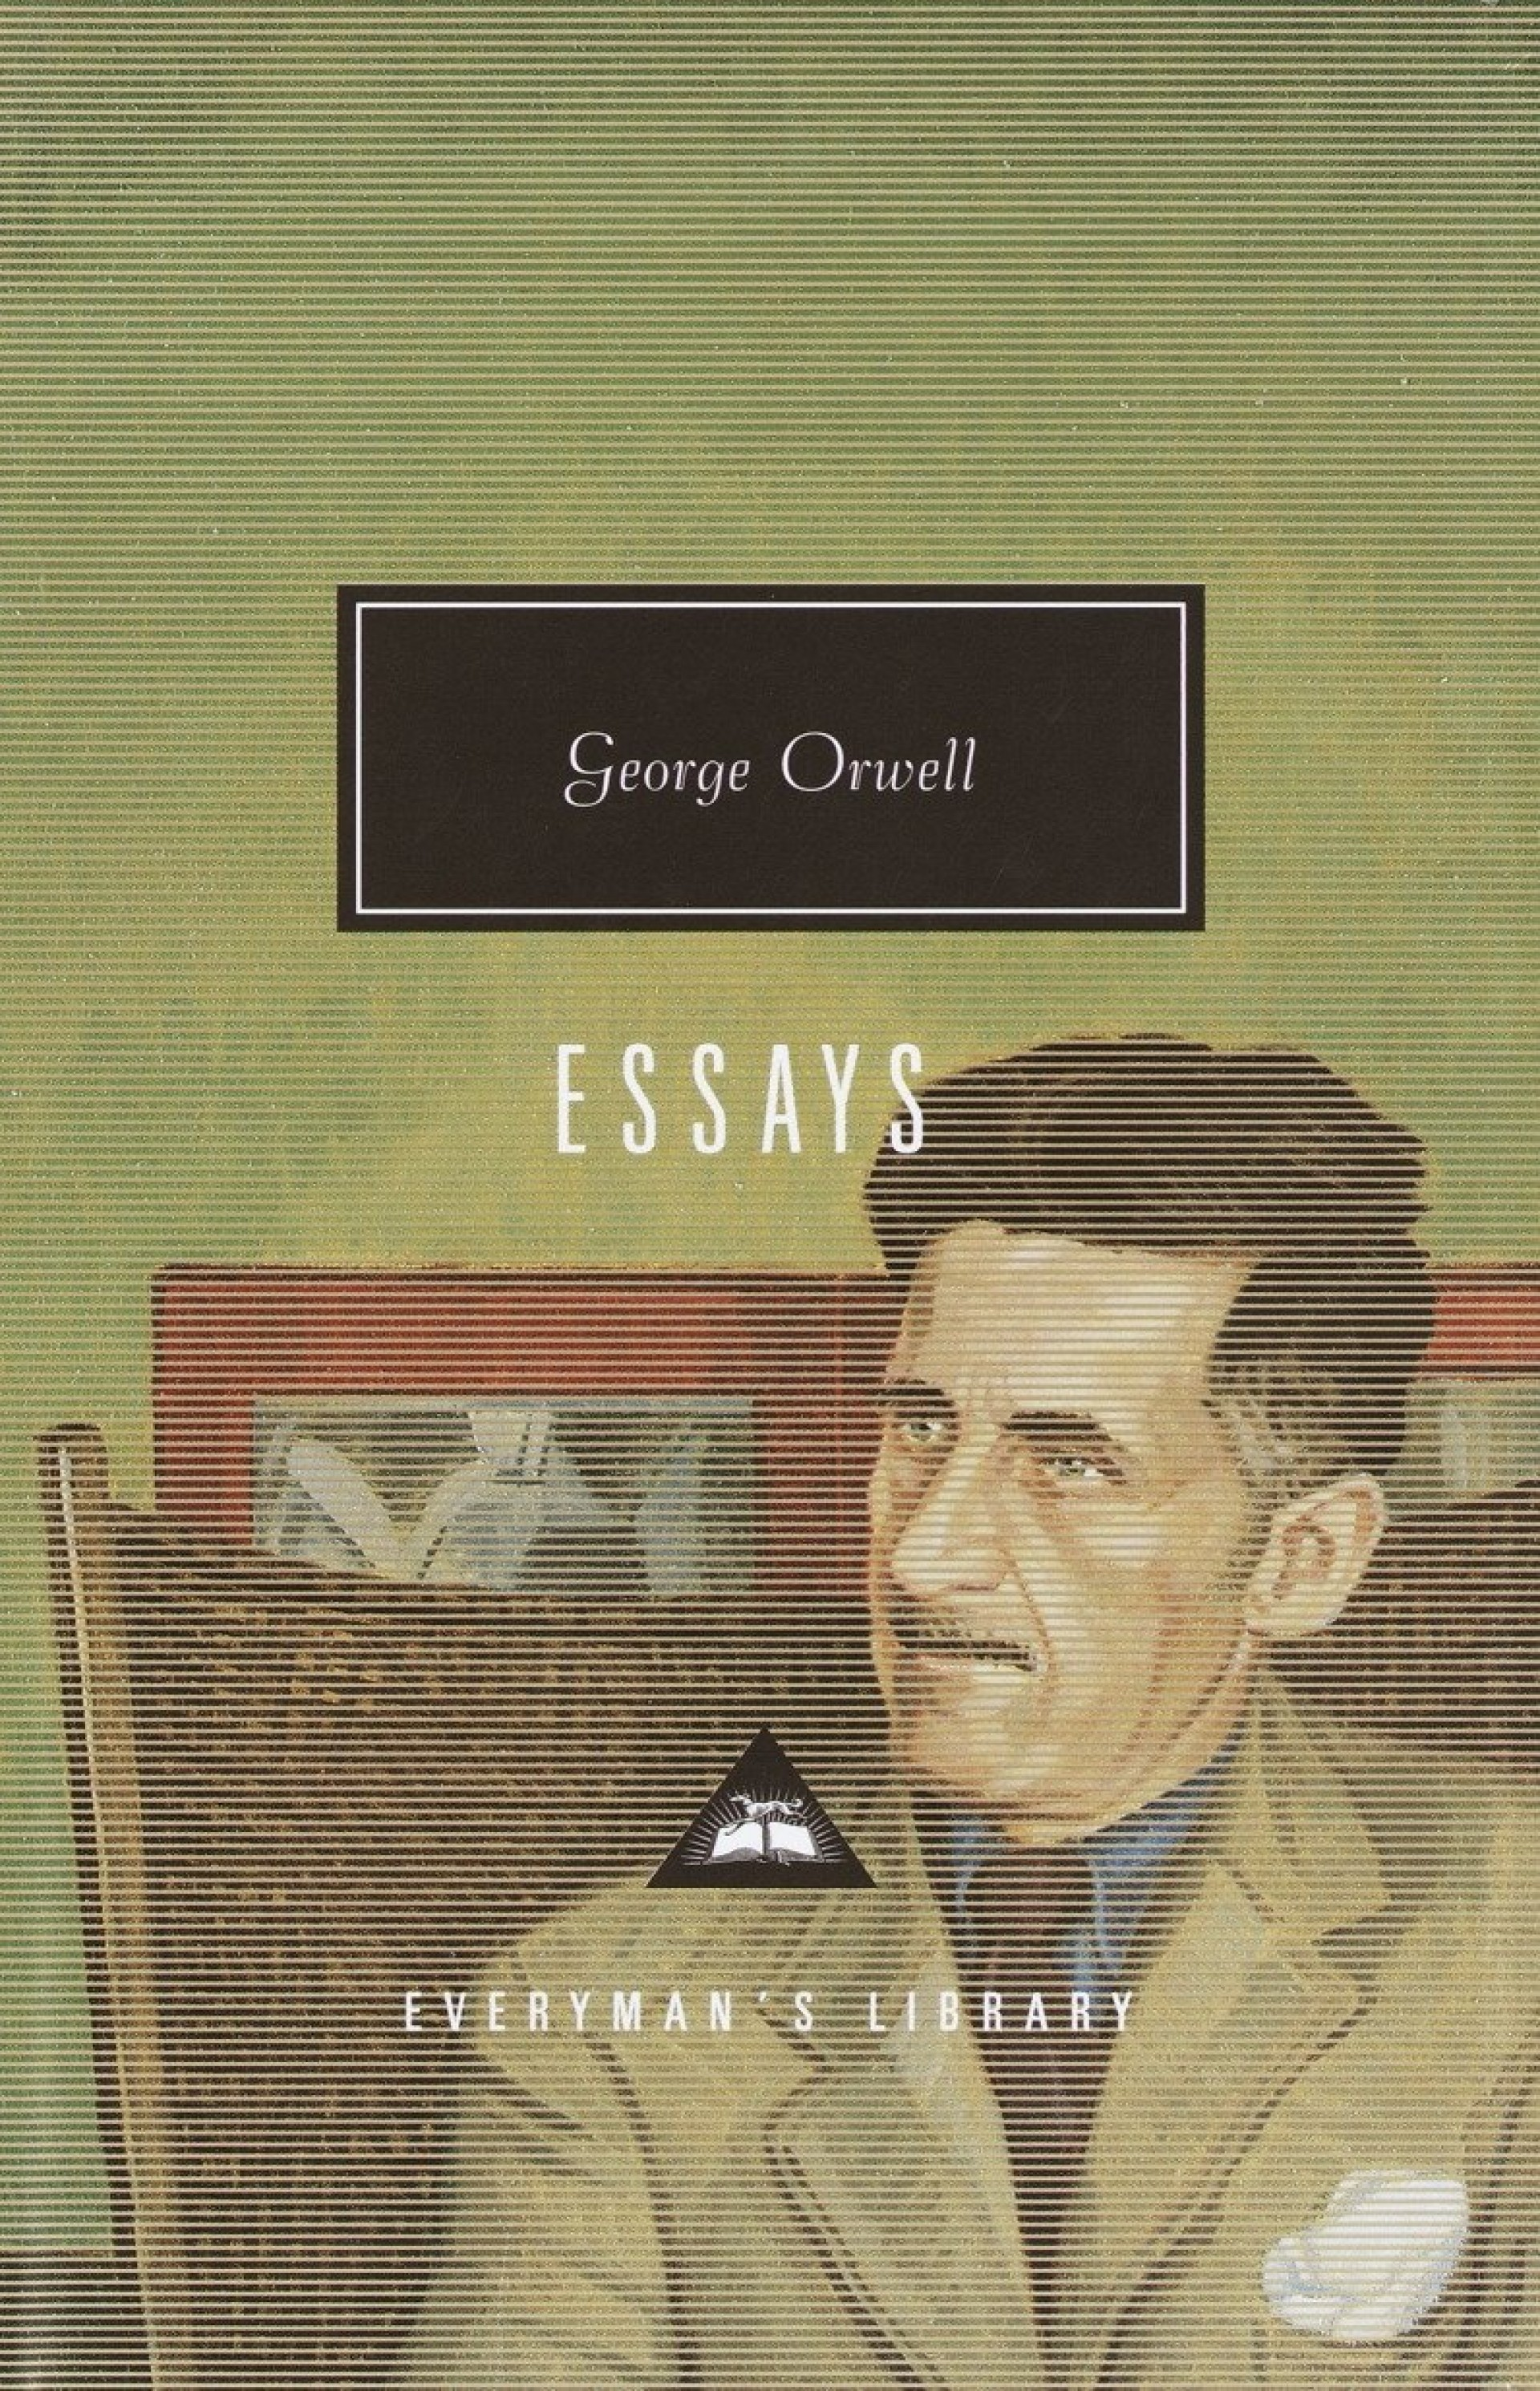 016 Orwell Essays Essay Example Singular Amazon Pdf Epub 1920